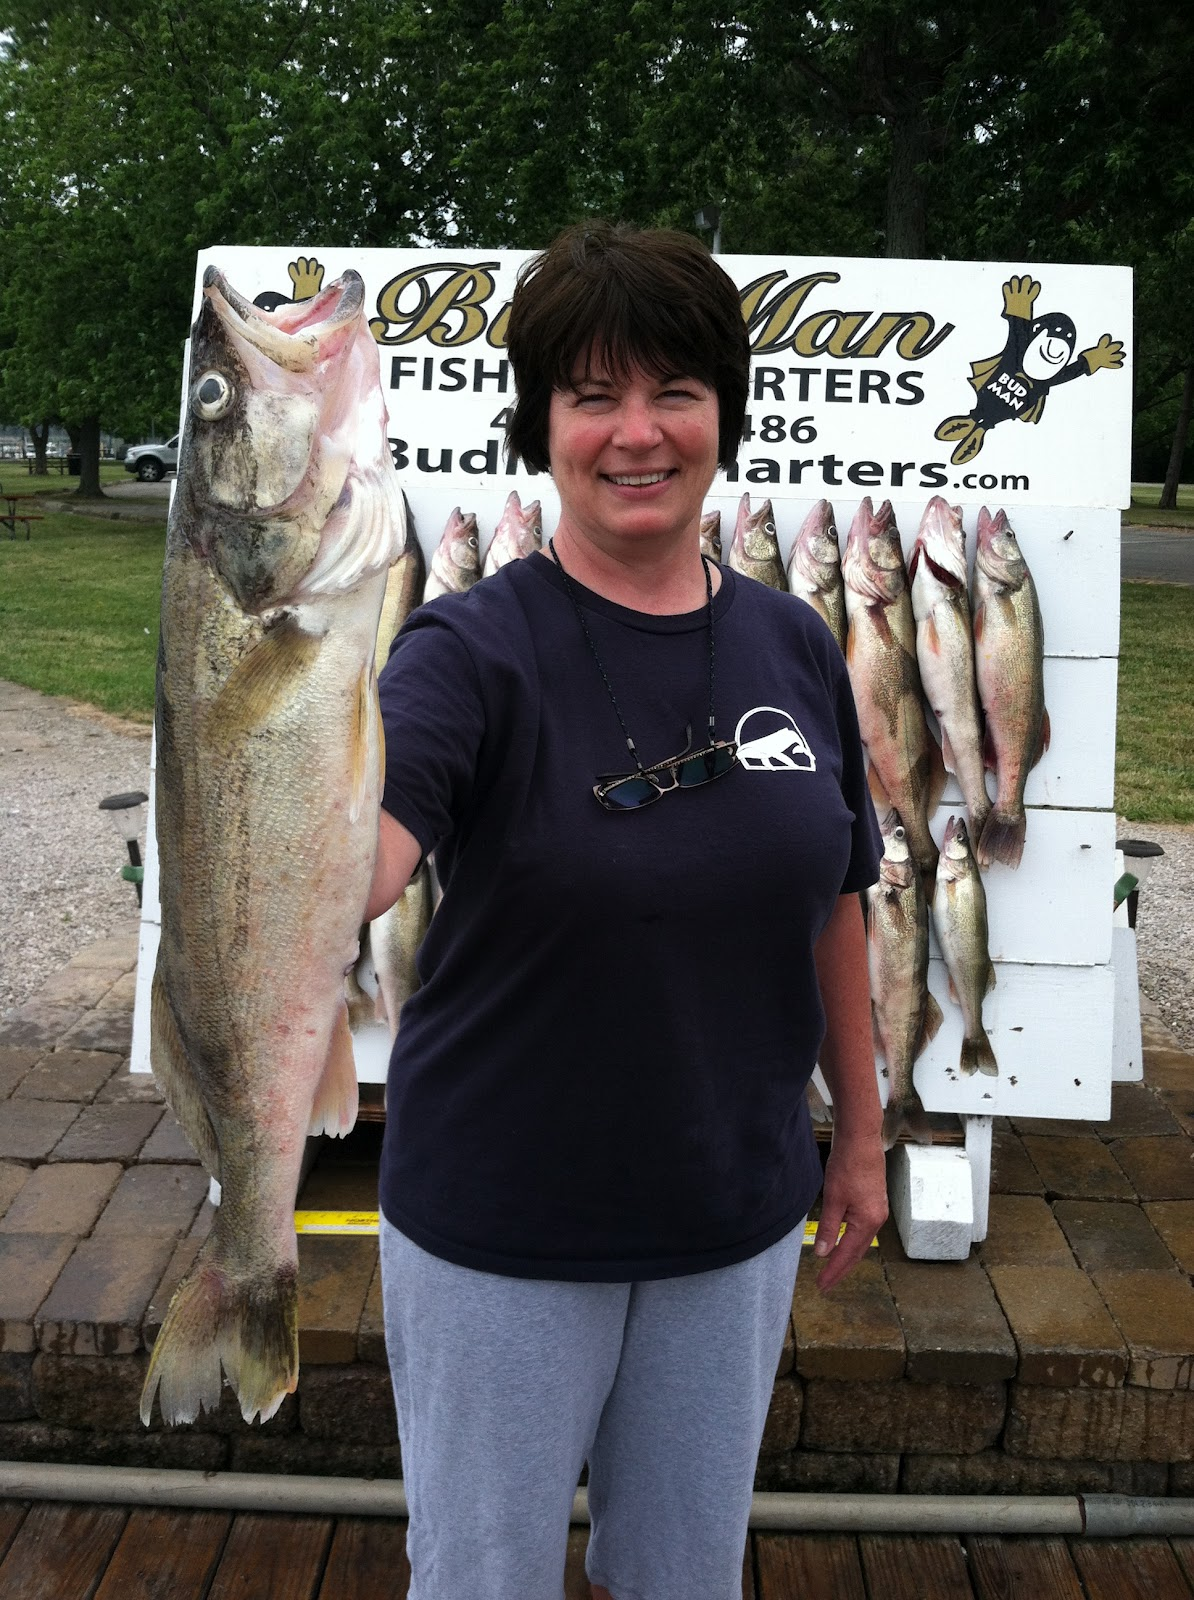 Lake erie walleye fishing reports canadian line east of for Odnr fishing report